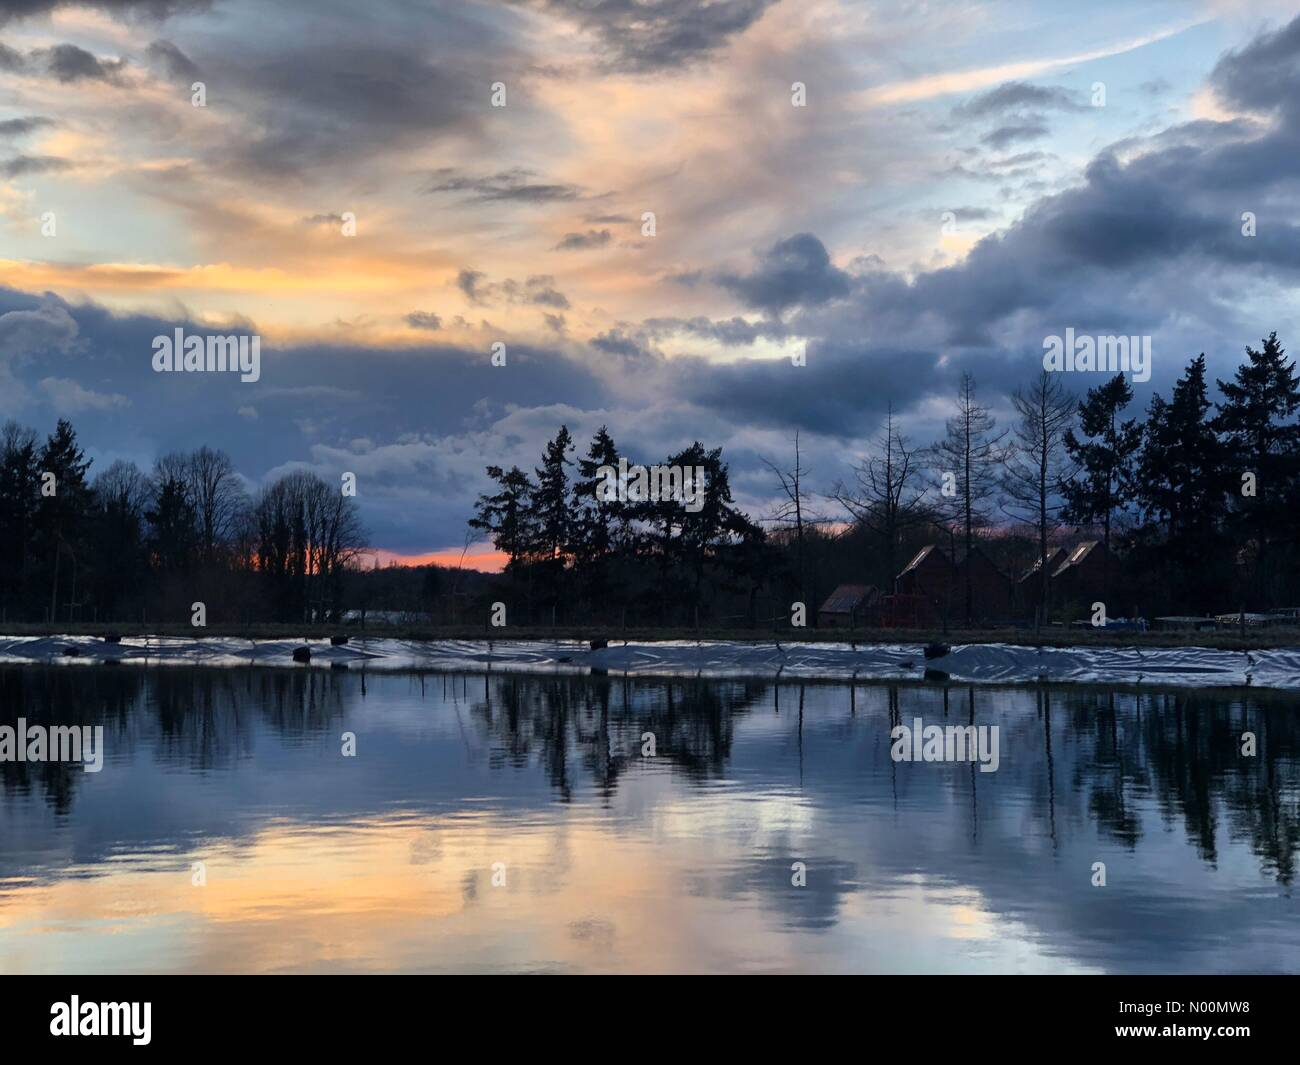 Godalming, UK. 28th Mar, 2018. UK Weather: Stormy sunset over Godalming. Tuesley Farm, Godalming. 28th March 2018. A stormy end to the day for the Home Counties. Sunset over Tuesley Farm in Godalming, Surrey. Credit: jamesjagger/StockimoNews/Alamy Live News - Stock Image